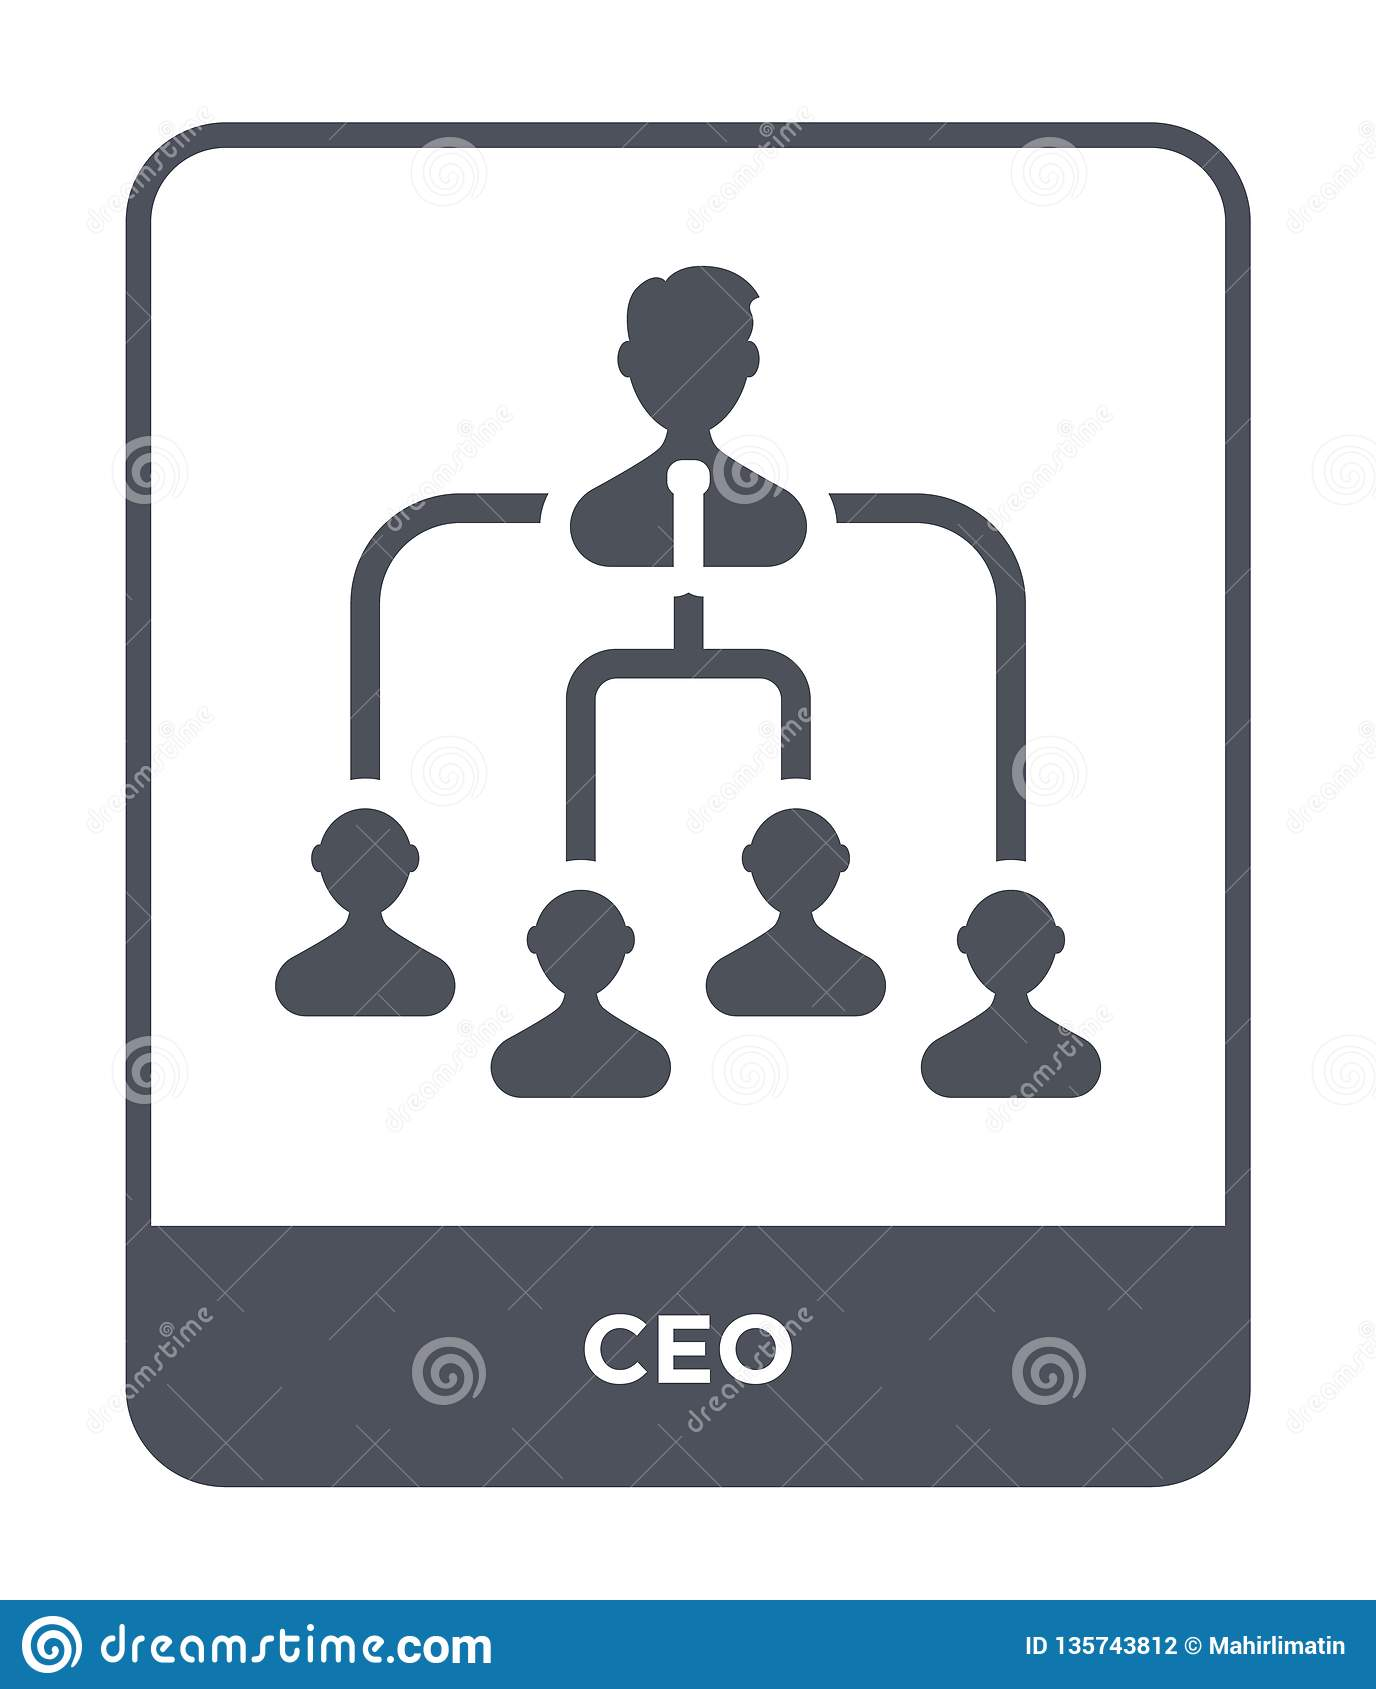 ceo icon in trendy design style. ceo icon isolated on white background. ceo vector icon simple and modern flat symbol for web site